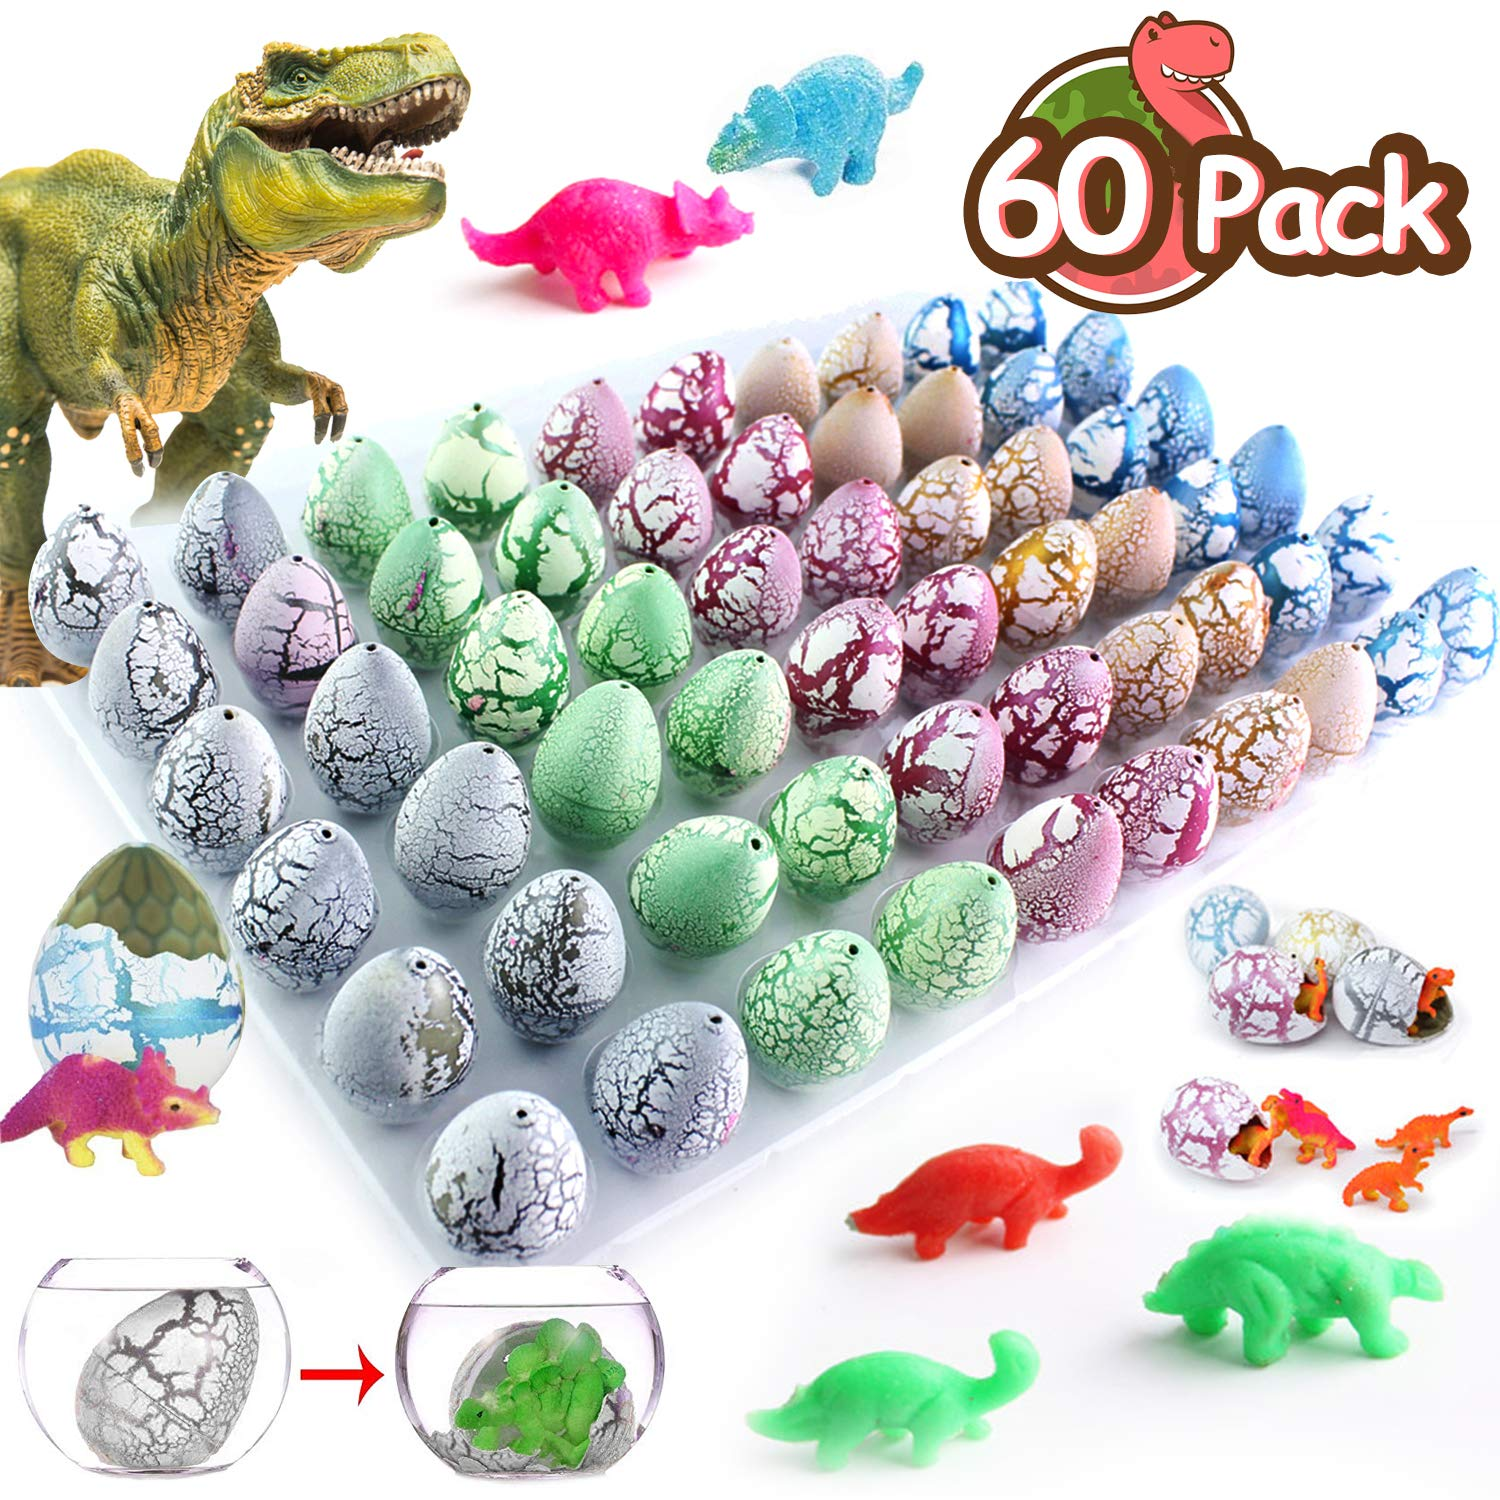 TURNMEON 60 Pack Crack Dinosaur Eggs Hatch in Water Grow Jurassic Eggs Novelty Magic with Mini Dino Toys Classroom Learning Outdoor Toys Easter Party Favors Supplies Festival Gifts for Kids Girls Boys